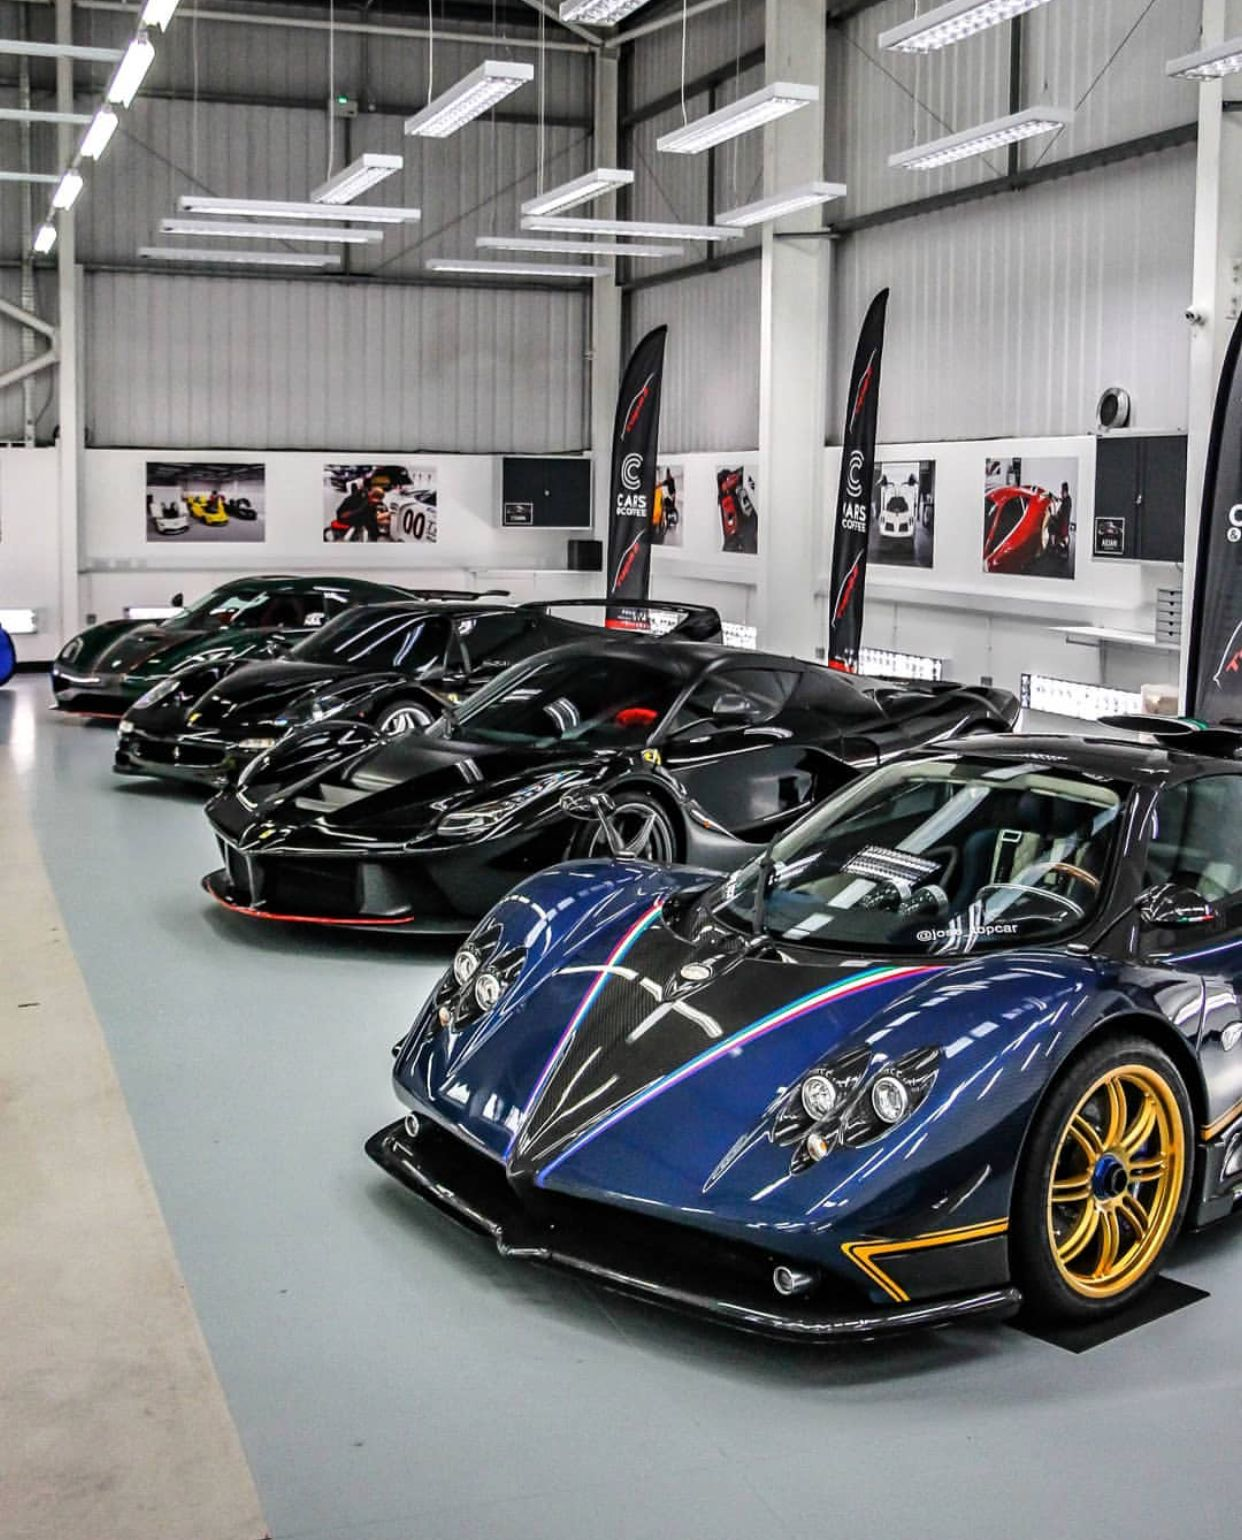 Hyper Car Collection Dream Cars Super Cars Fast Cars